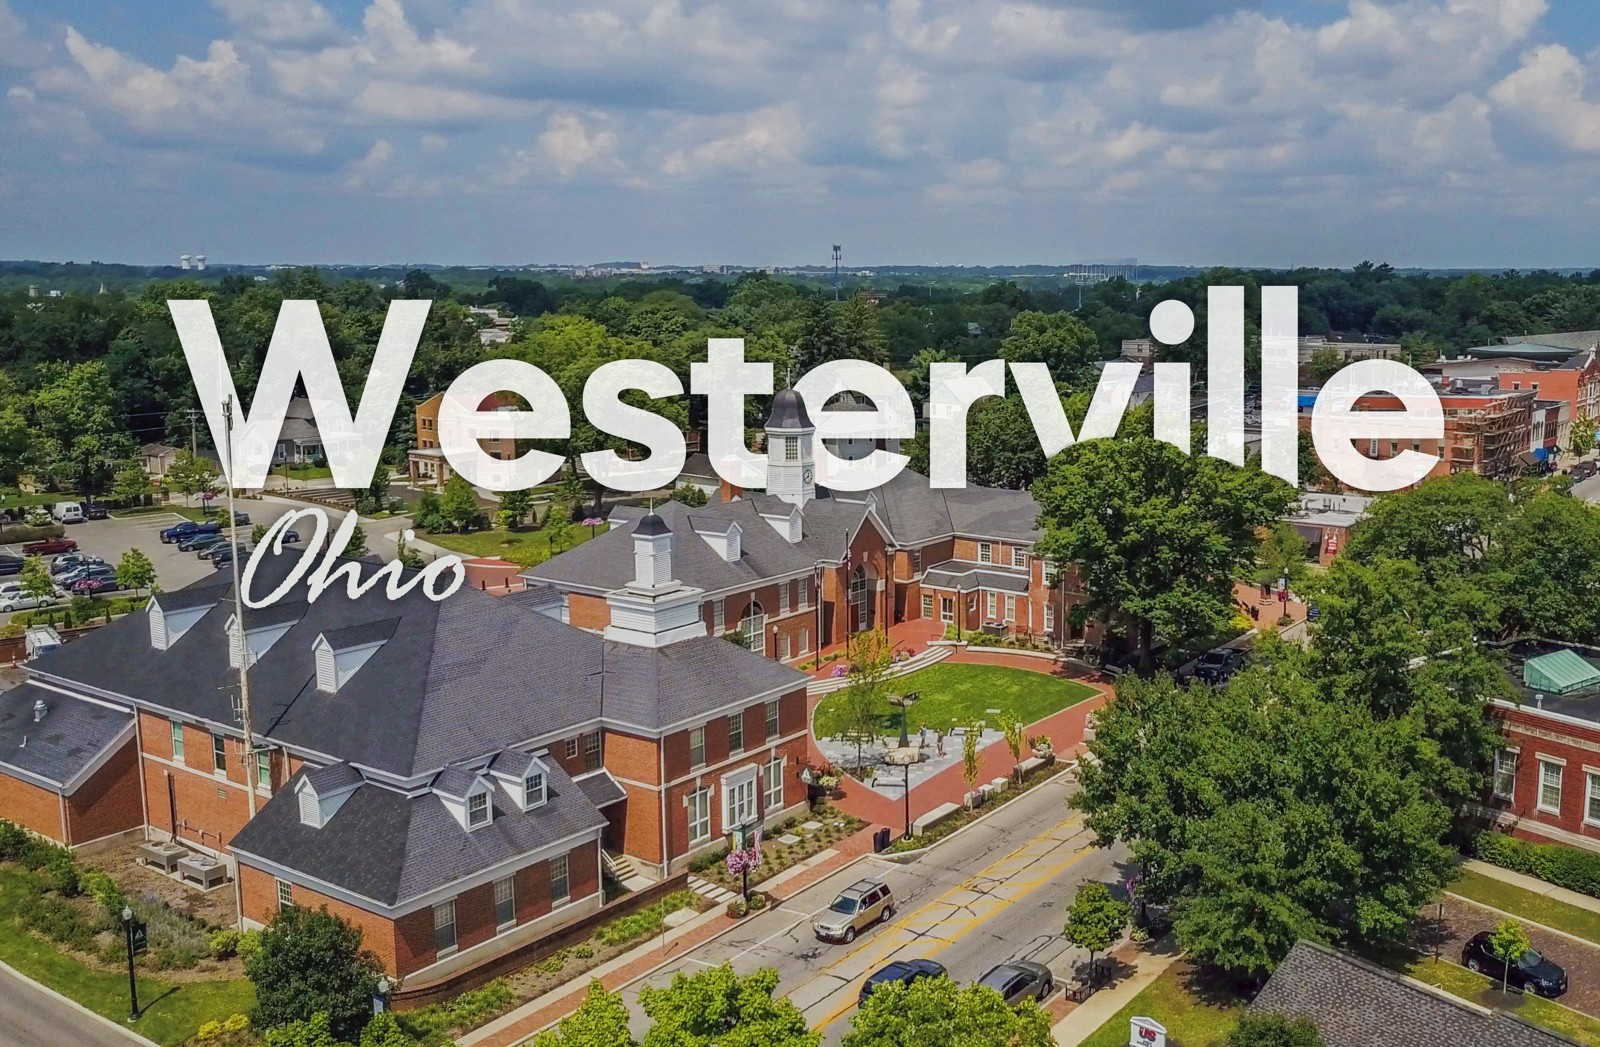 westerville town logo